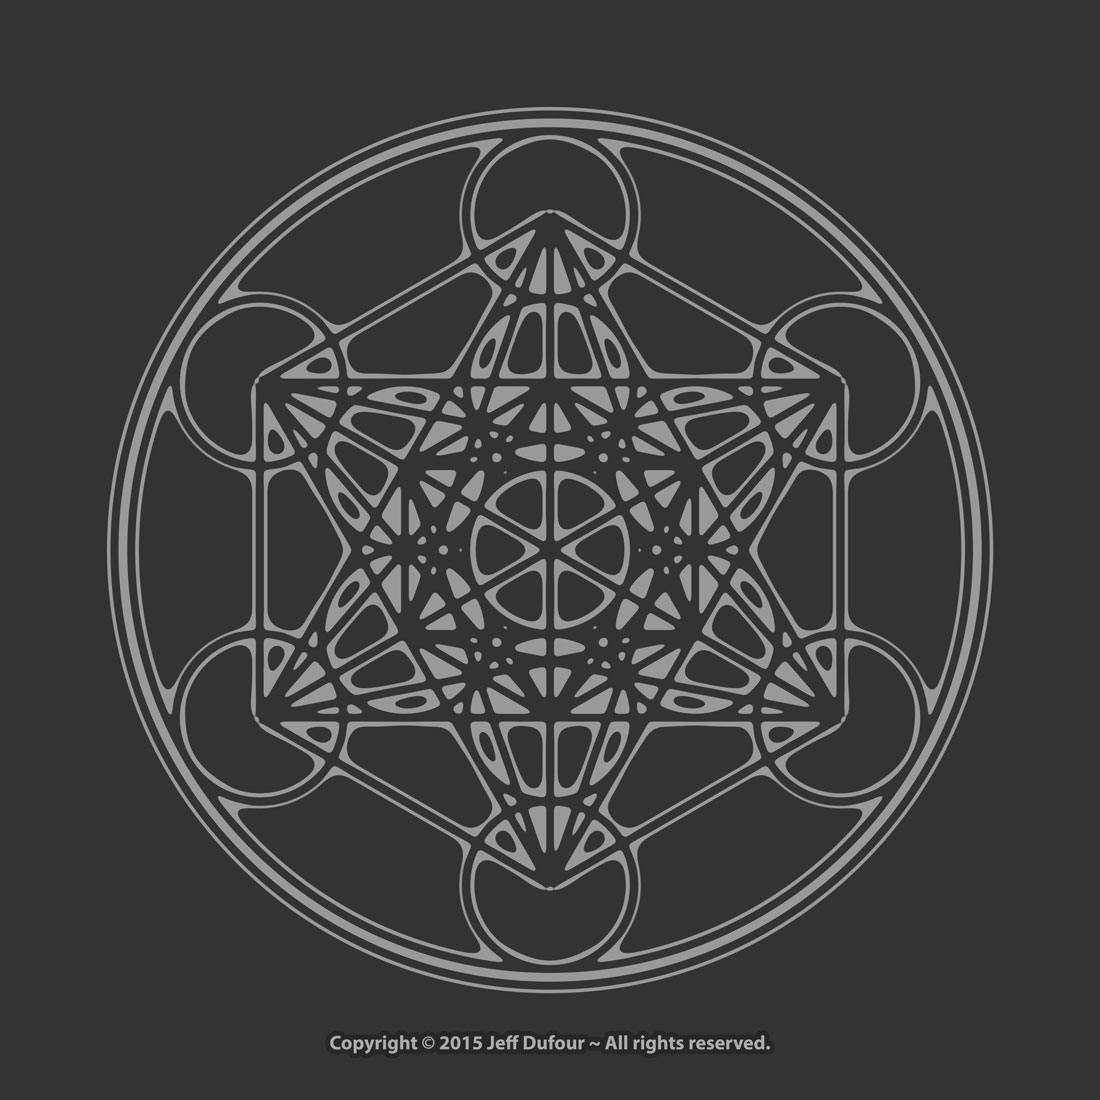 Metatron's Cube in grey